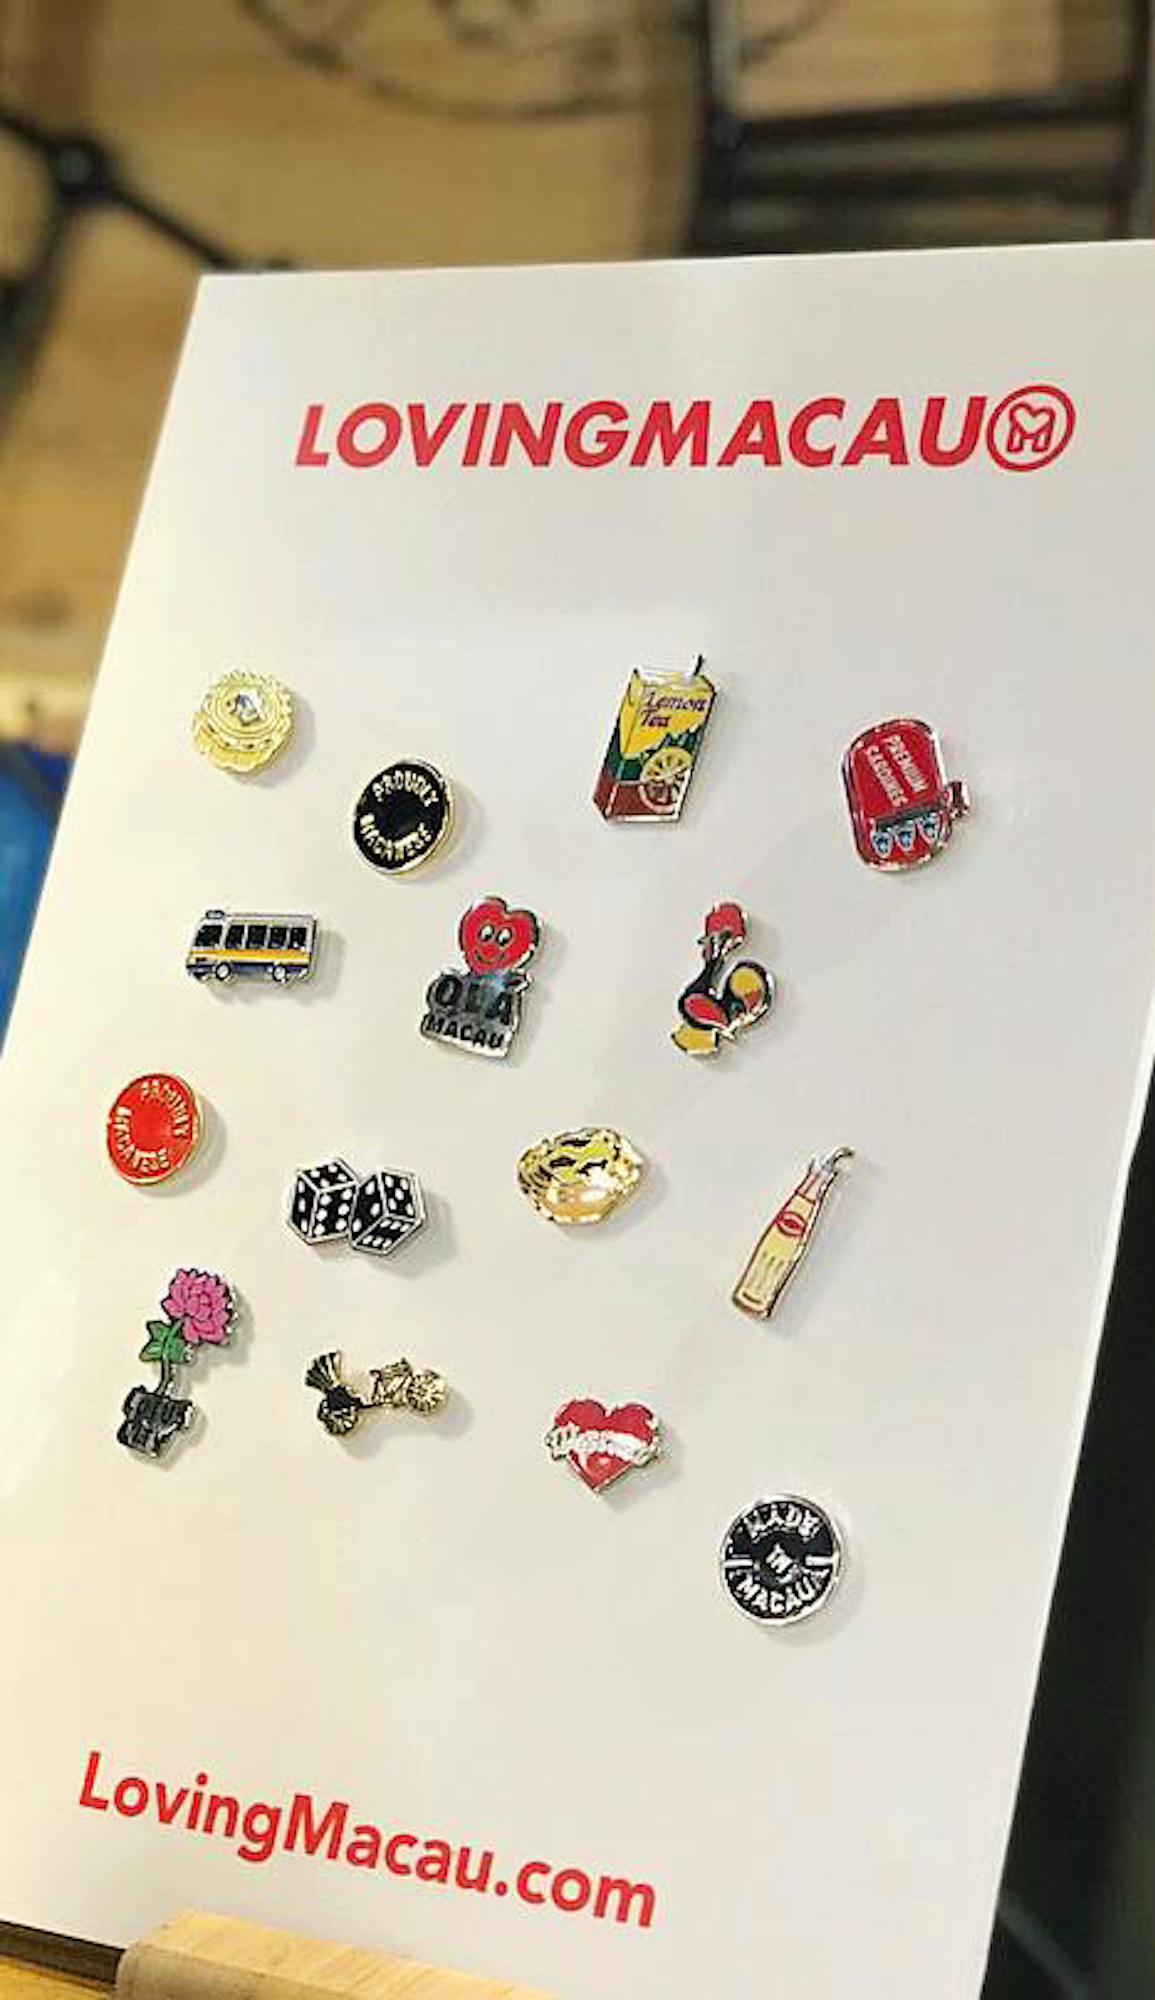 Macao-inspired magnets by Loving Macau